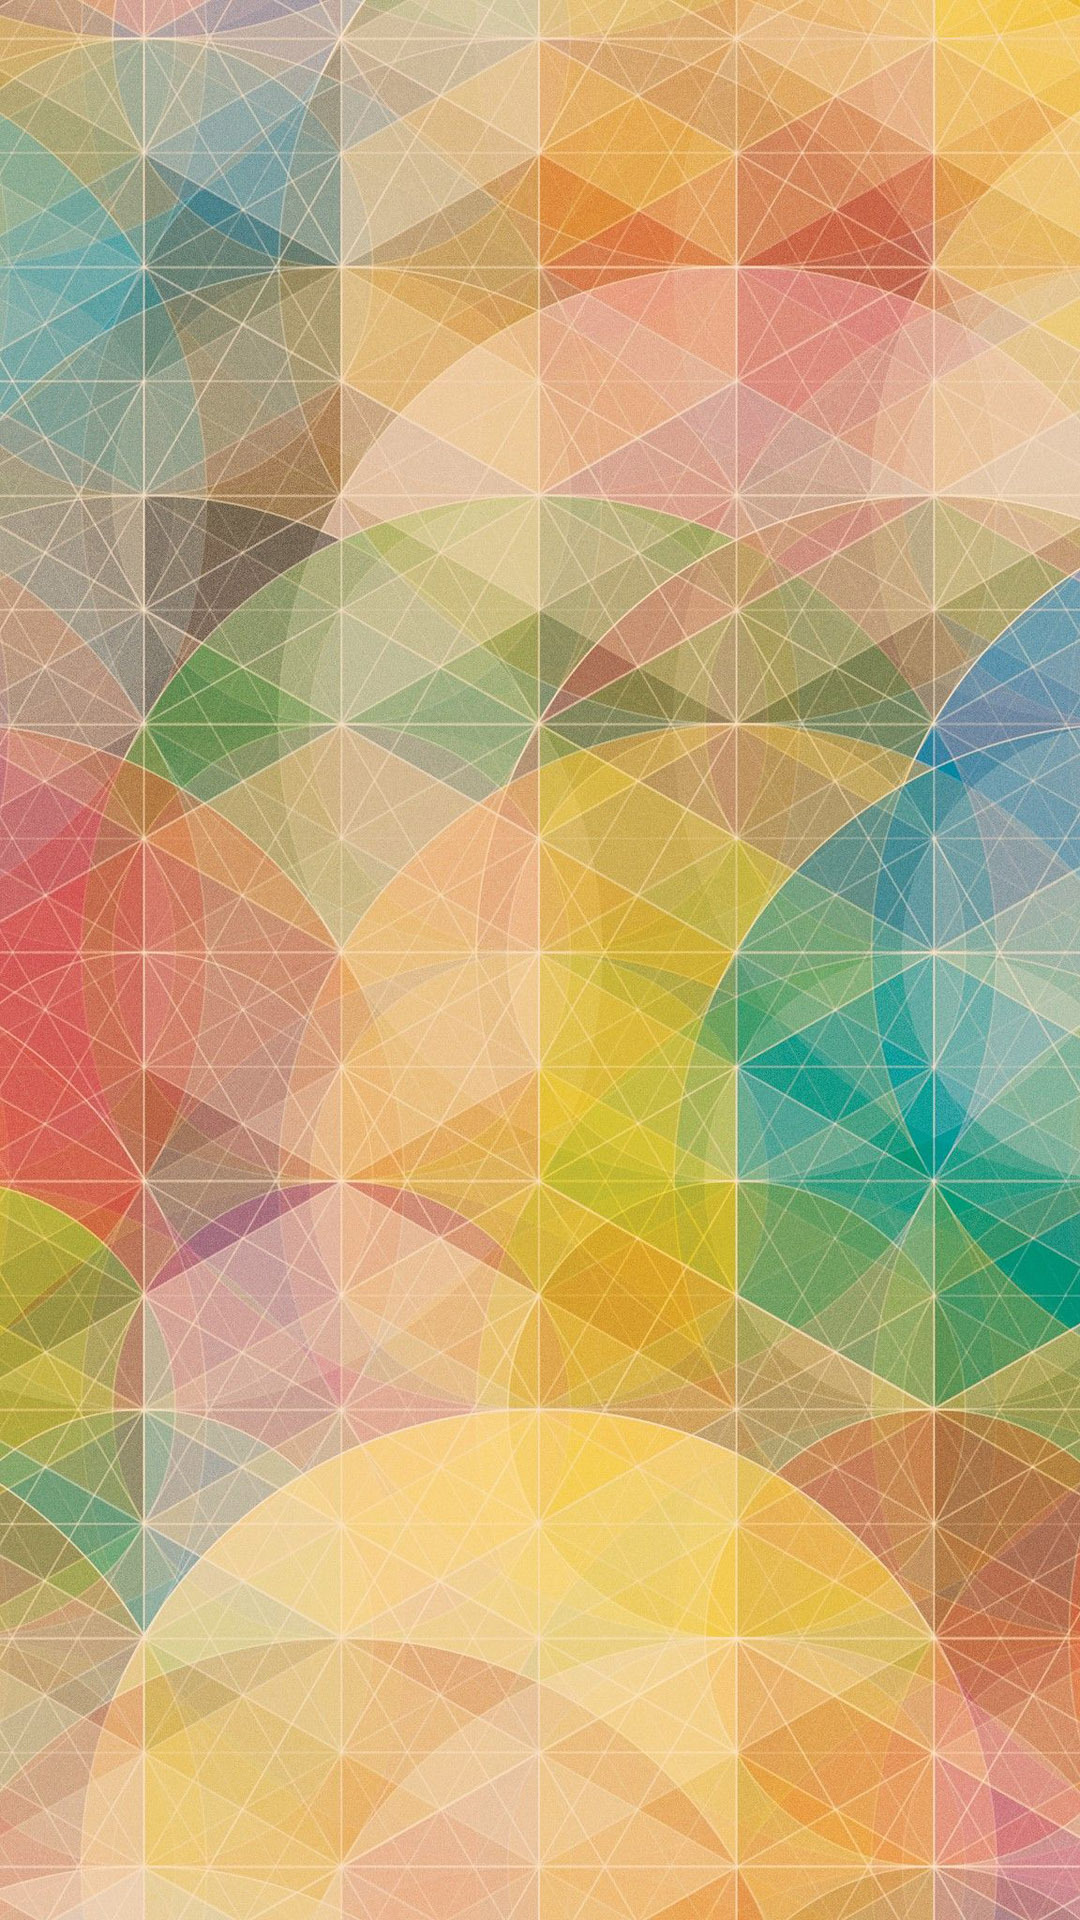 Colorful geometric patterns best htc one m9 wallpaper - Geometric wallpaper colorful ...